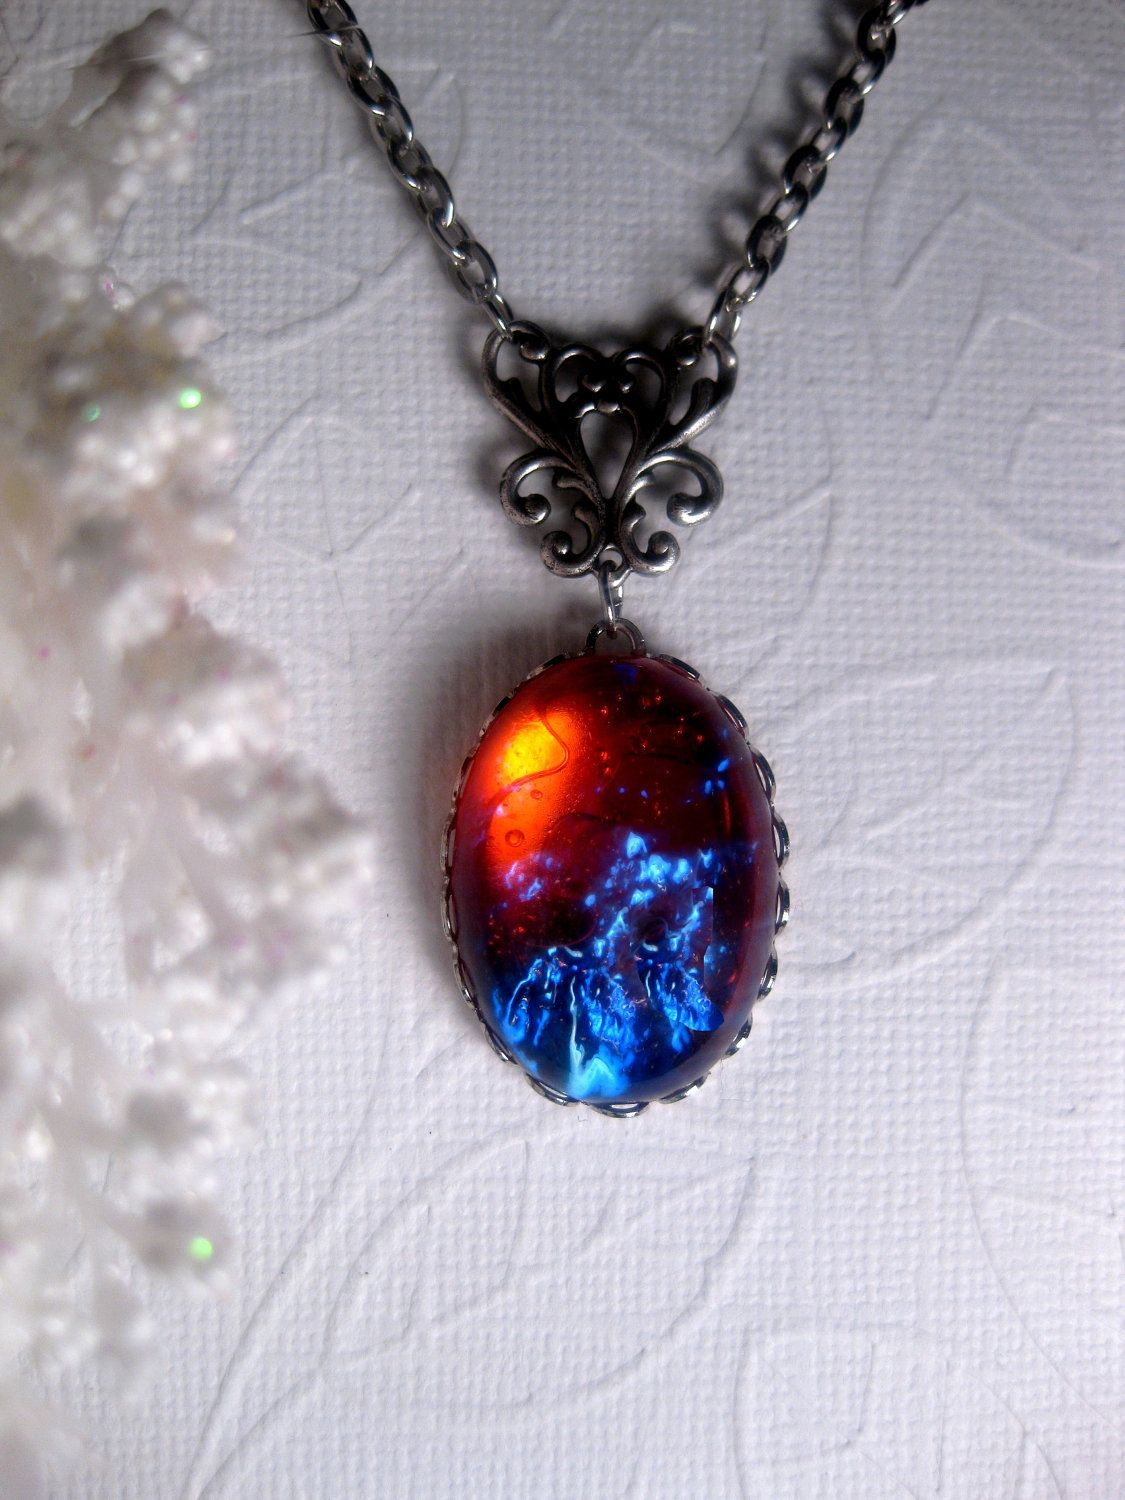 Fire opal necklace dragons breath fire opal fantasy gift for fire opal necklace dragons breath fire opal fantasy gift for eye of sauron fans mystical custom chain length christmas gift aloadofball Choice Image